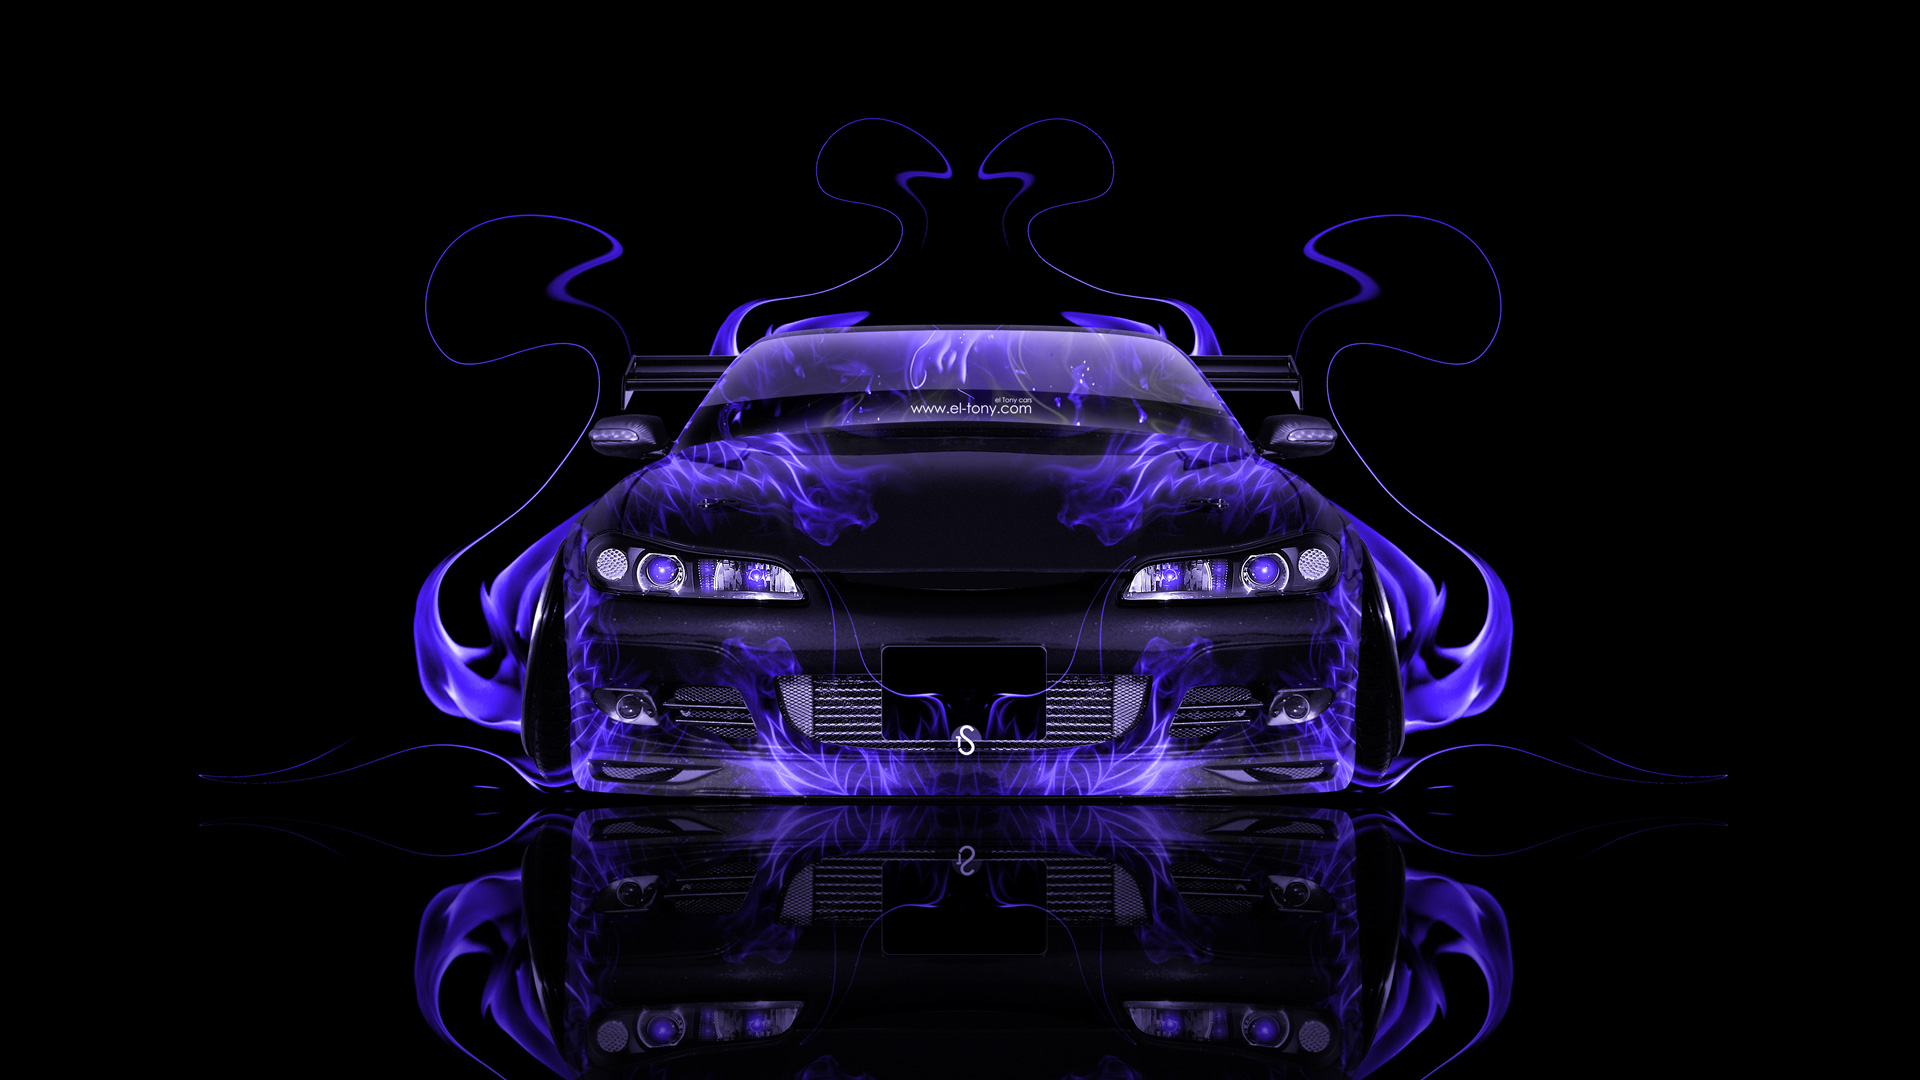 Gallardo Car Hd Wallpapers Nissan Silvia S15 Jdm Front Fire Abstract Car 2014 El Tony